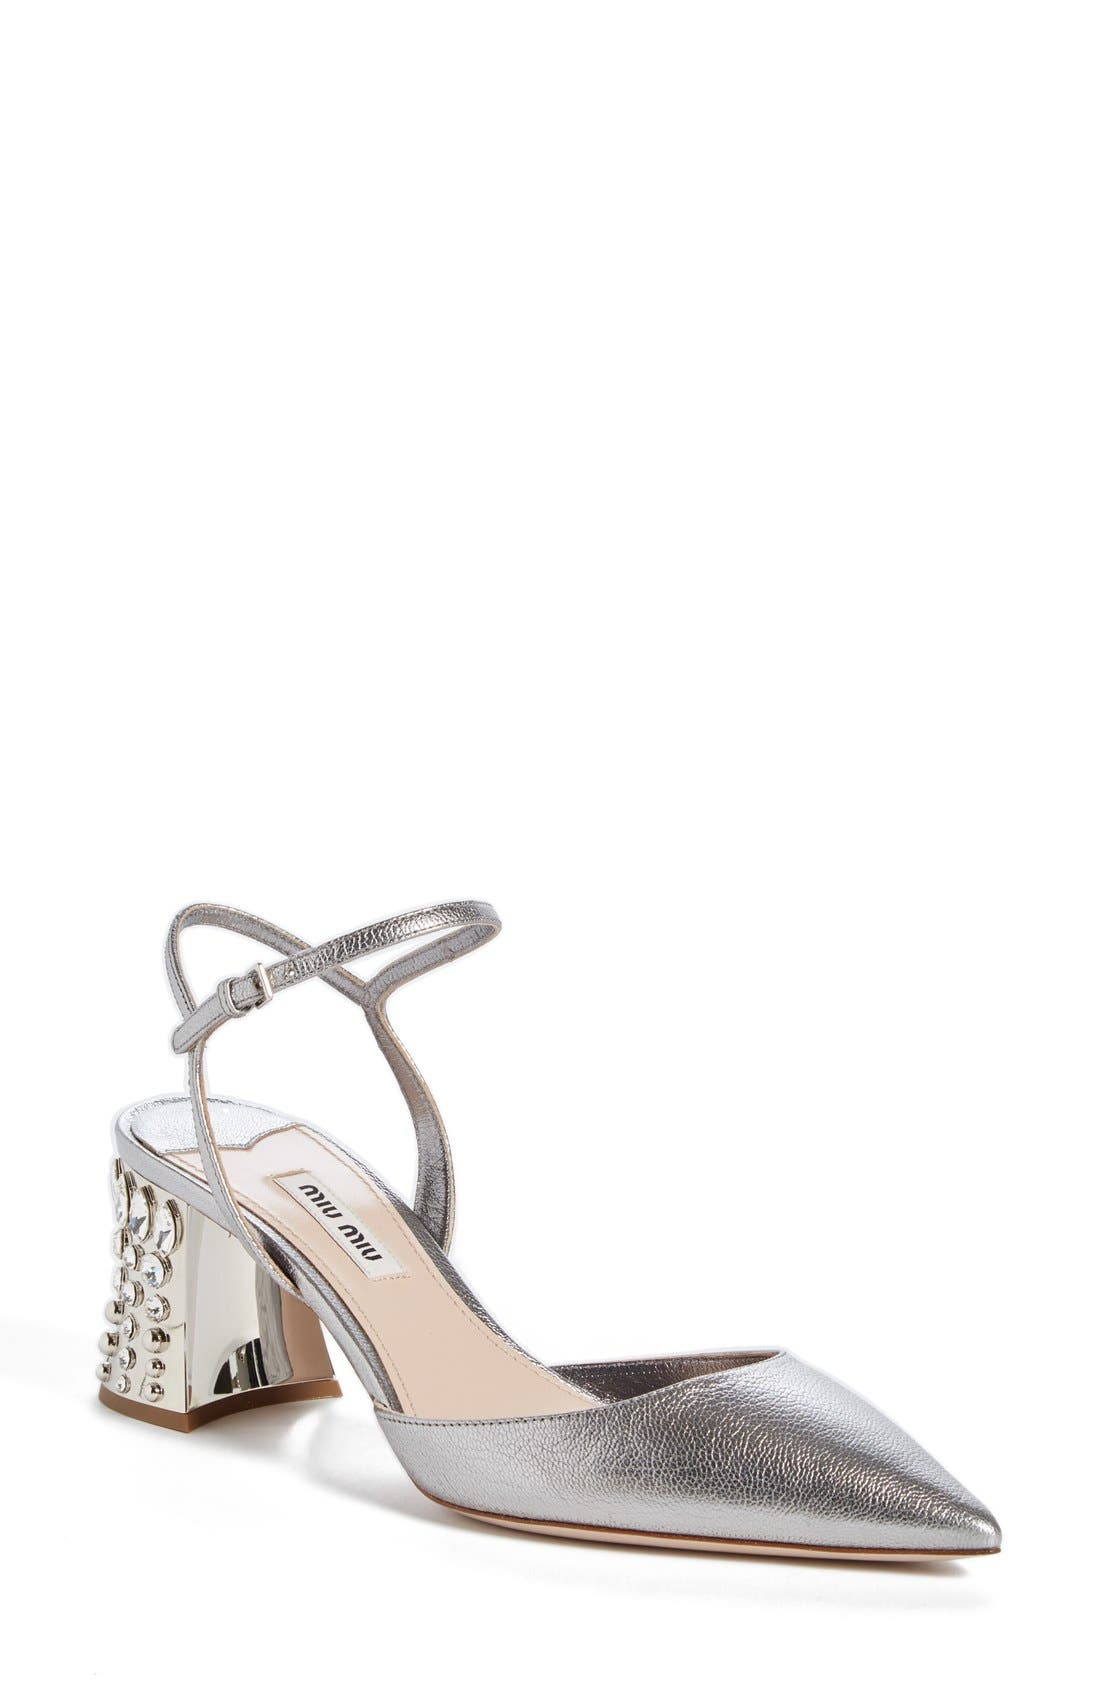 Jeweled Heel Ankle Strap Pump,                             Main thumbnail 1, color,                             Metallic Silver Leather